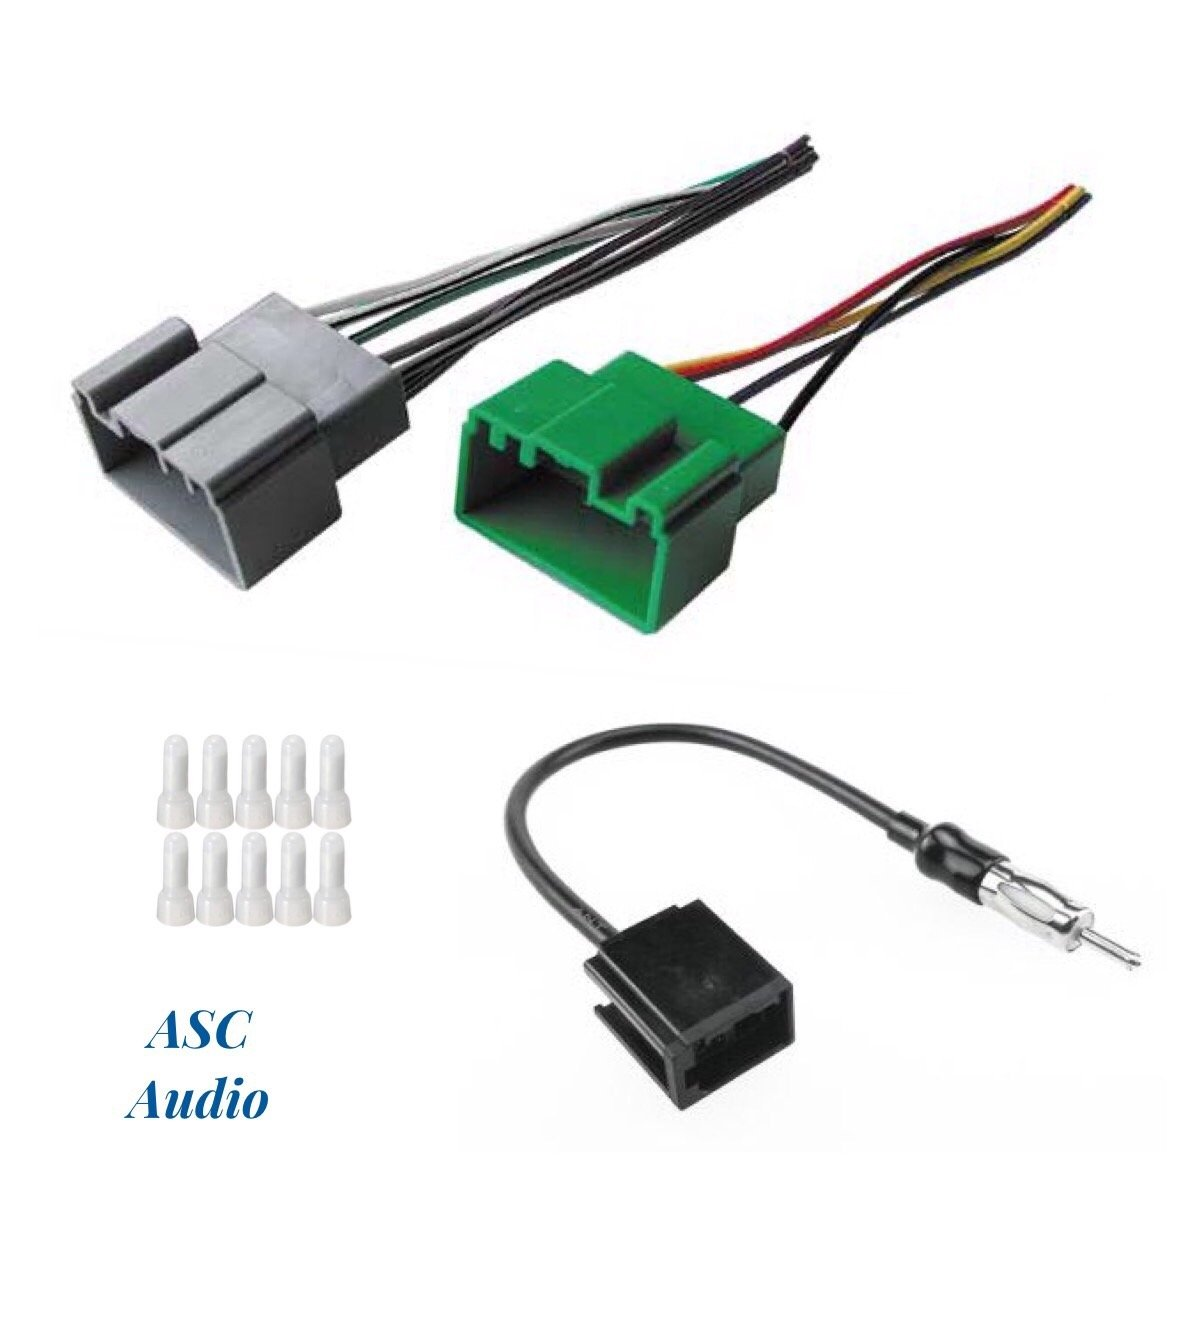 ASC Audio Car Stereo Radio Wire Harness and Antenna Adapter to Install an Aftermarket Radio for Volvo: 2000-2003 S40 / V40, 2001-2009 S60, 1999-2006 S80, 2001-2007 V70, 2003-2007 XC70 - No Premium Amp